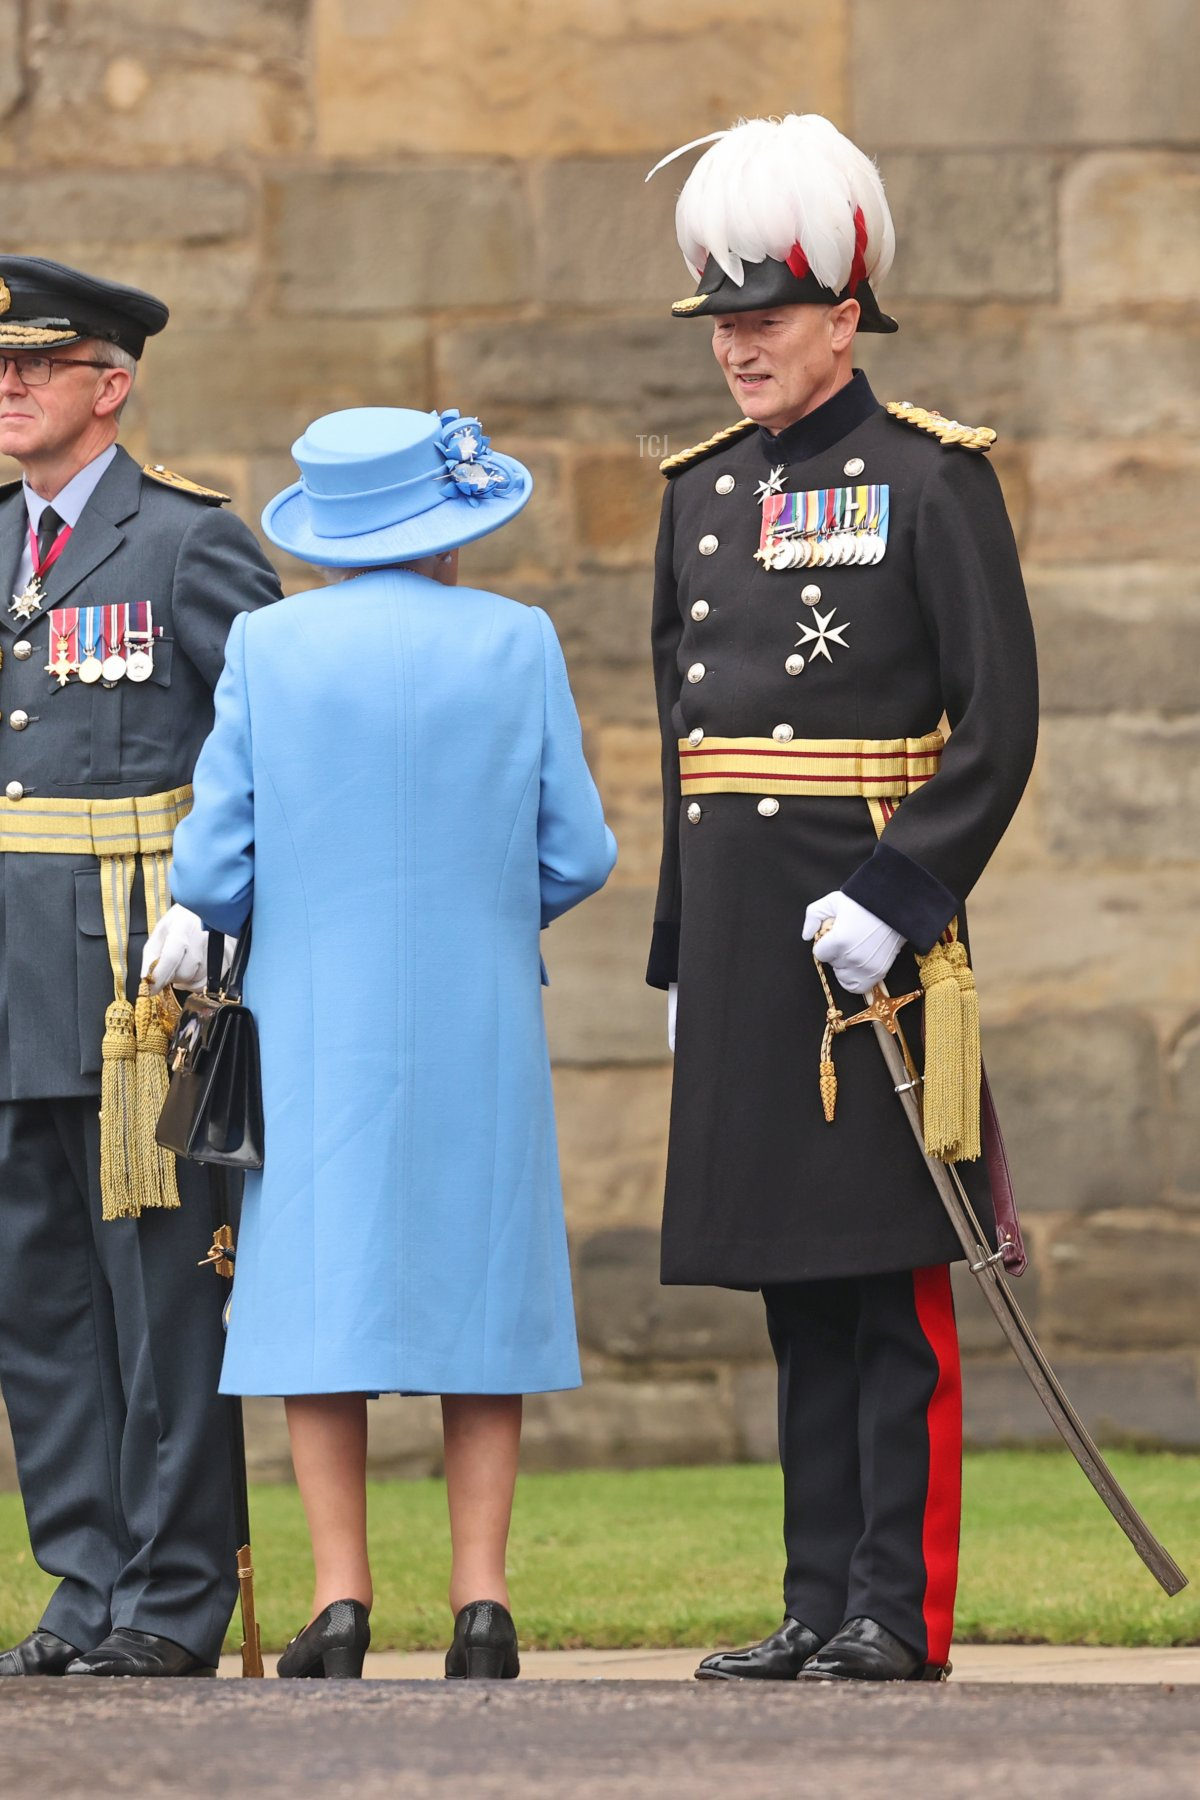 Queen Elizabeth II and Governor of Edinburgh Castle, Major General Alastair Bruce of Crionaich attend The Palace Of Holyrood house on June 28, 2021 in Edinburgh, Scotland